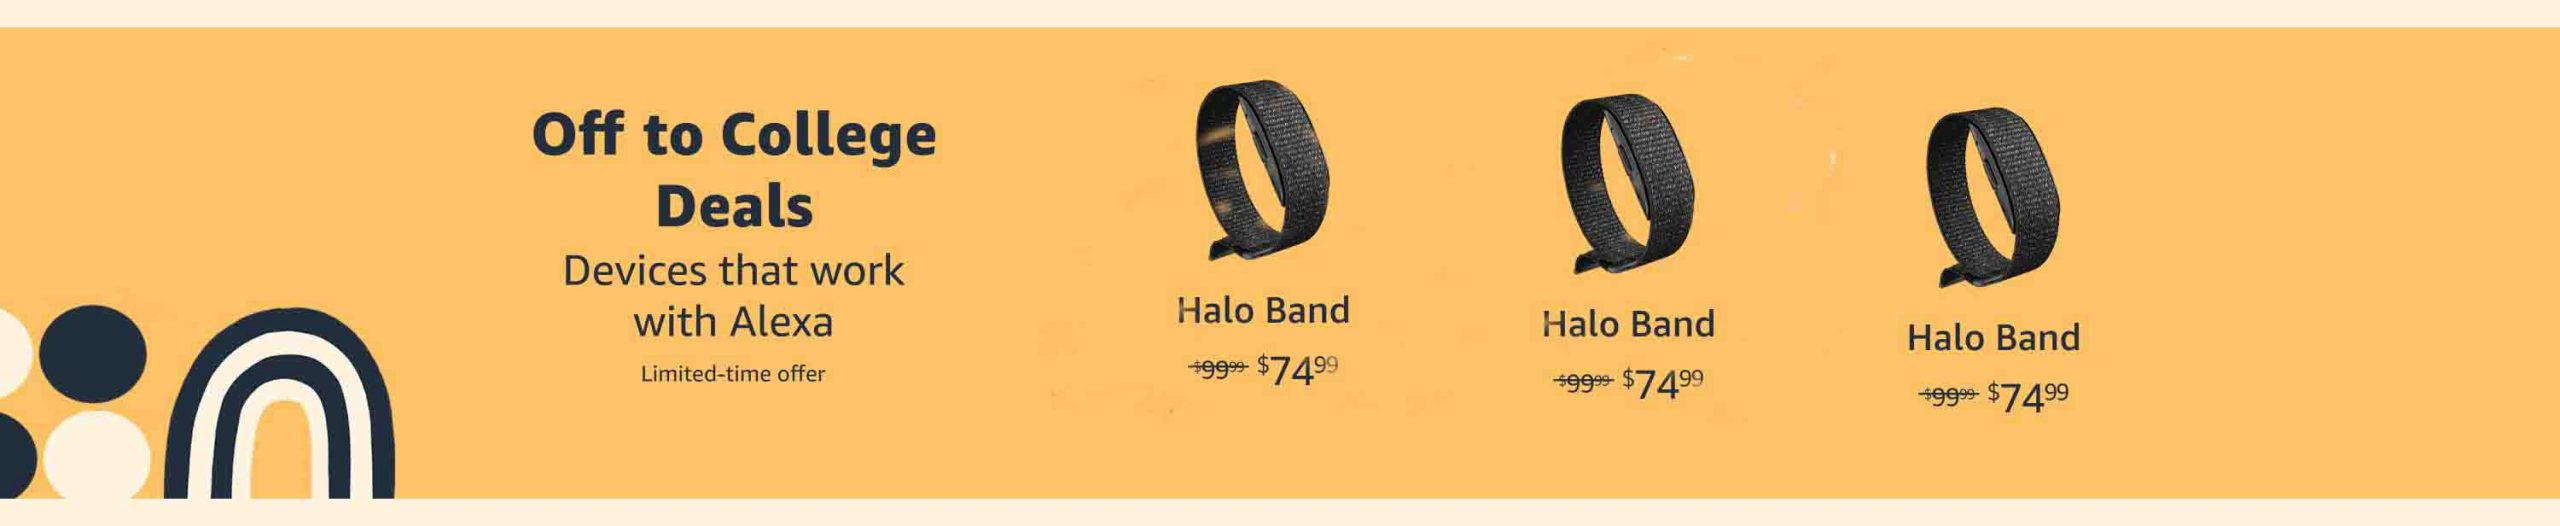 promos for Halo Band